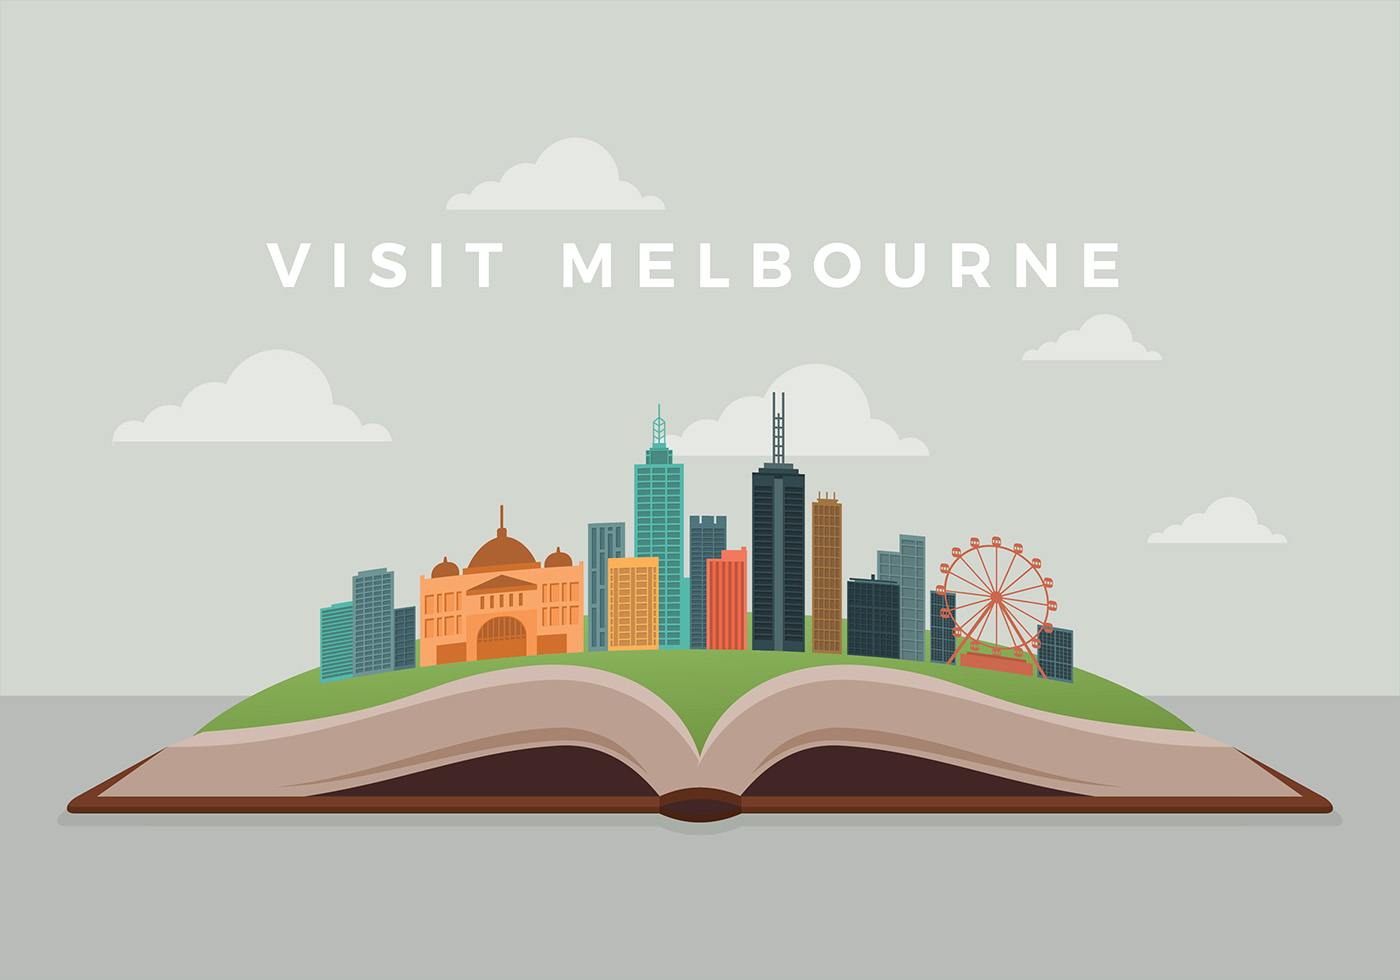 Online dating resource in Melbourne